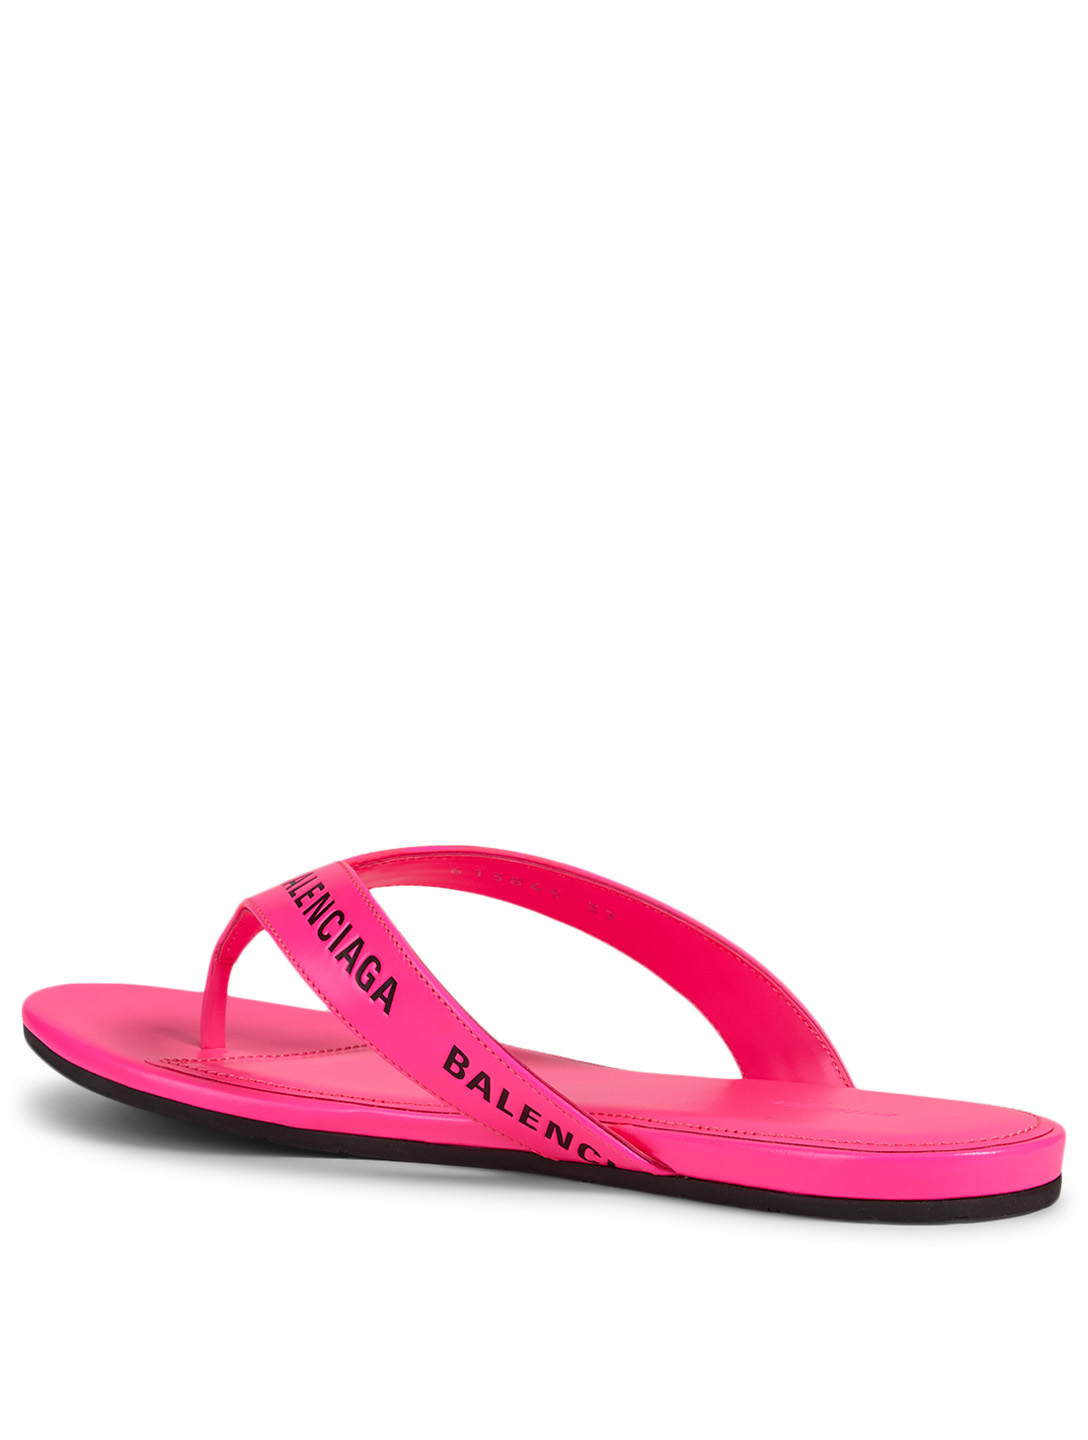 BALENCIAGA Round Leather Logo Thong Sandals Women's Pink